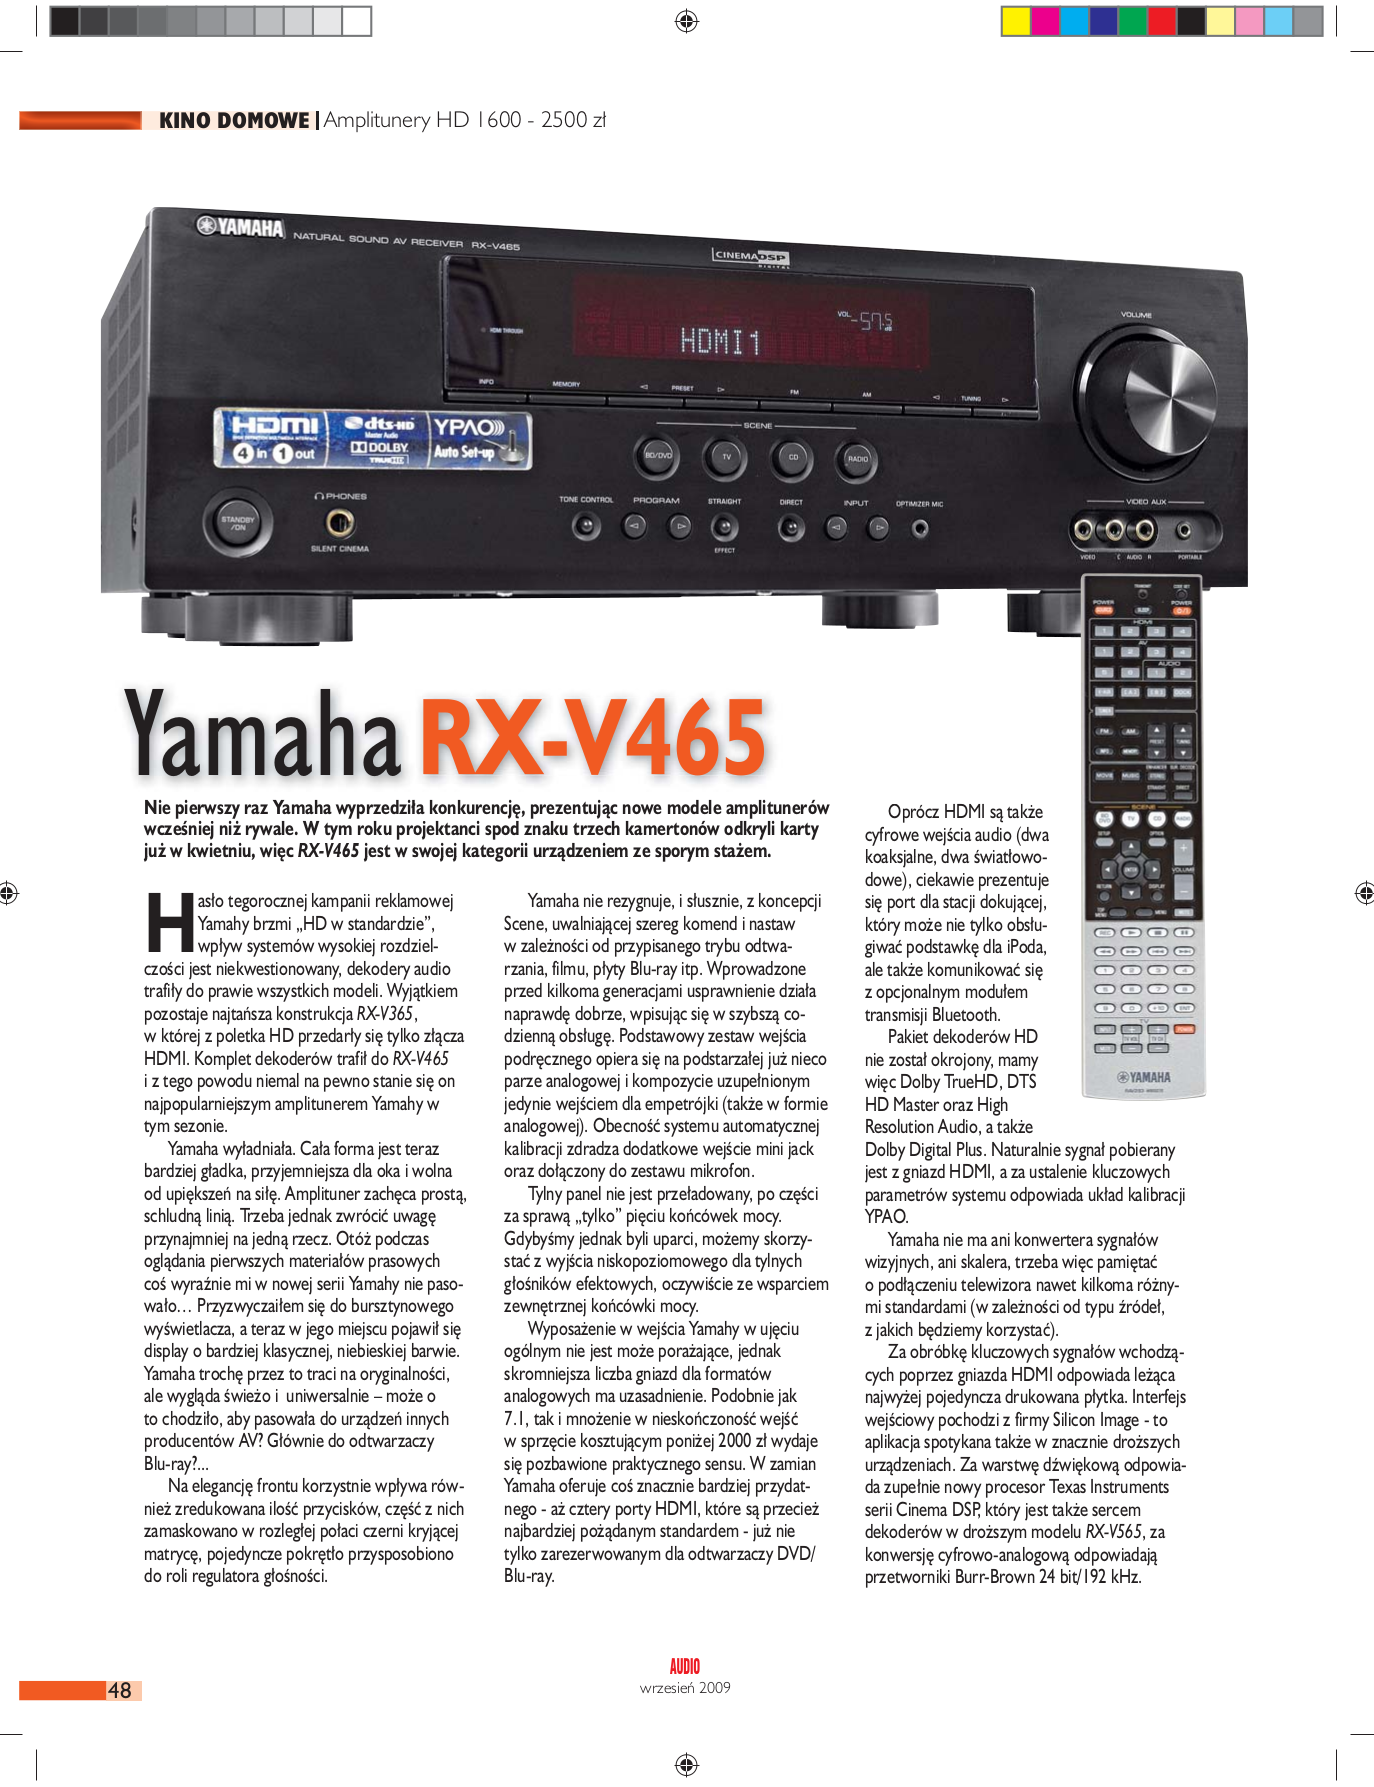 download free pdf for yamaha rx v465 receiver manual